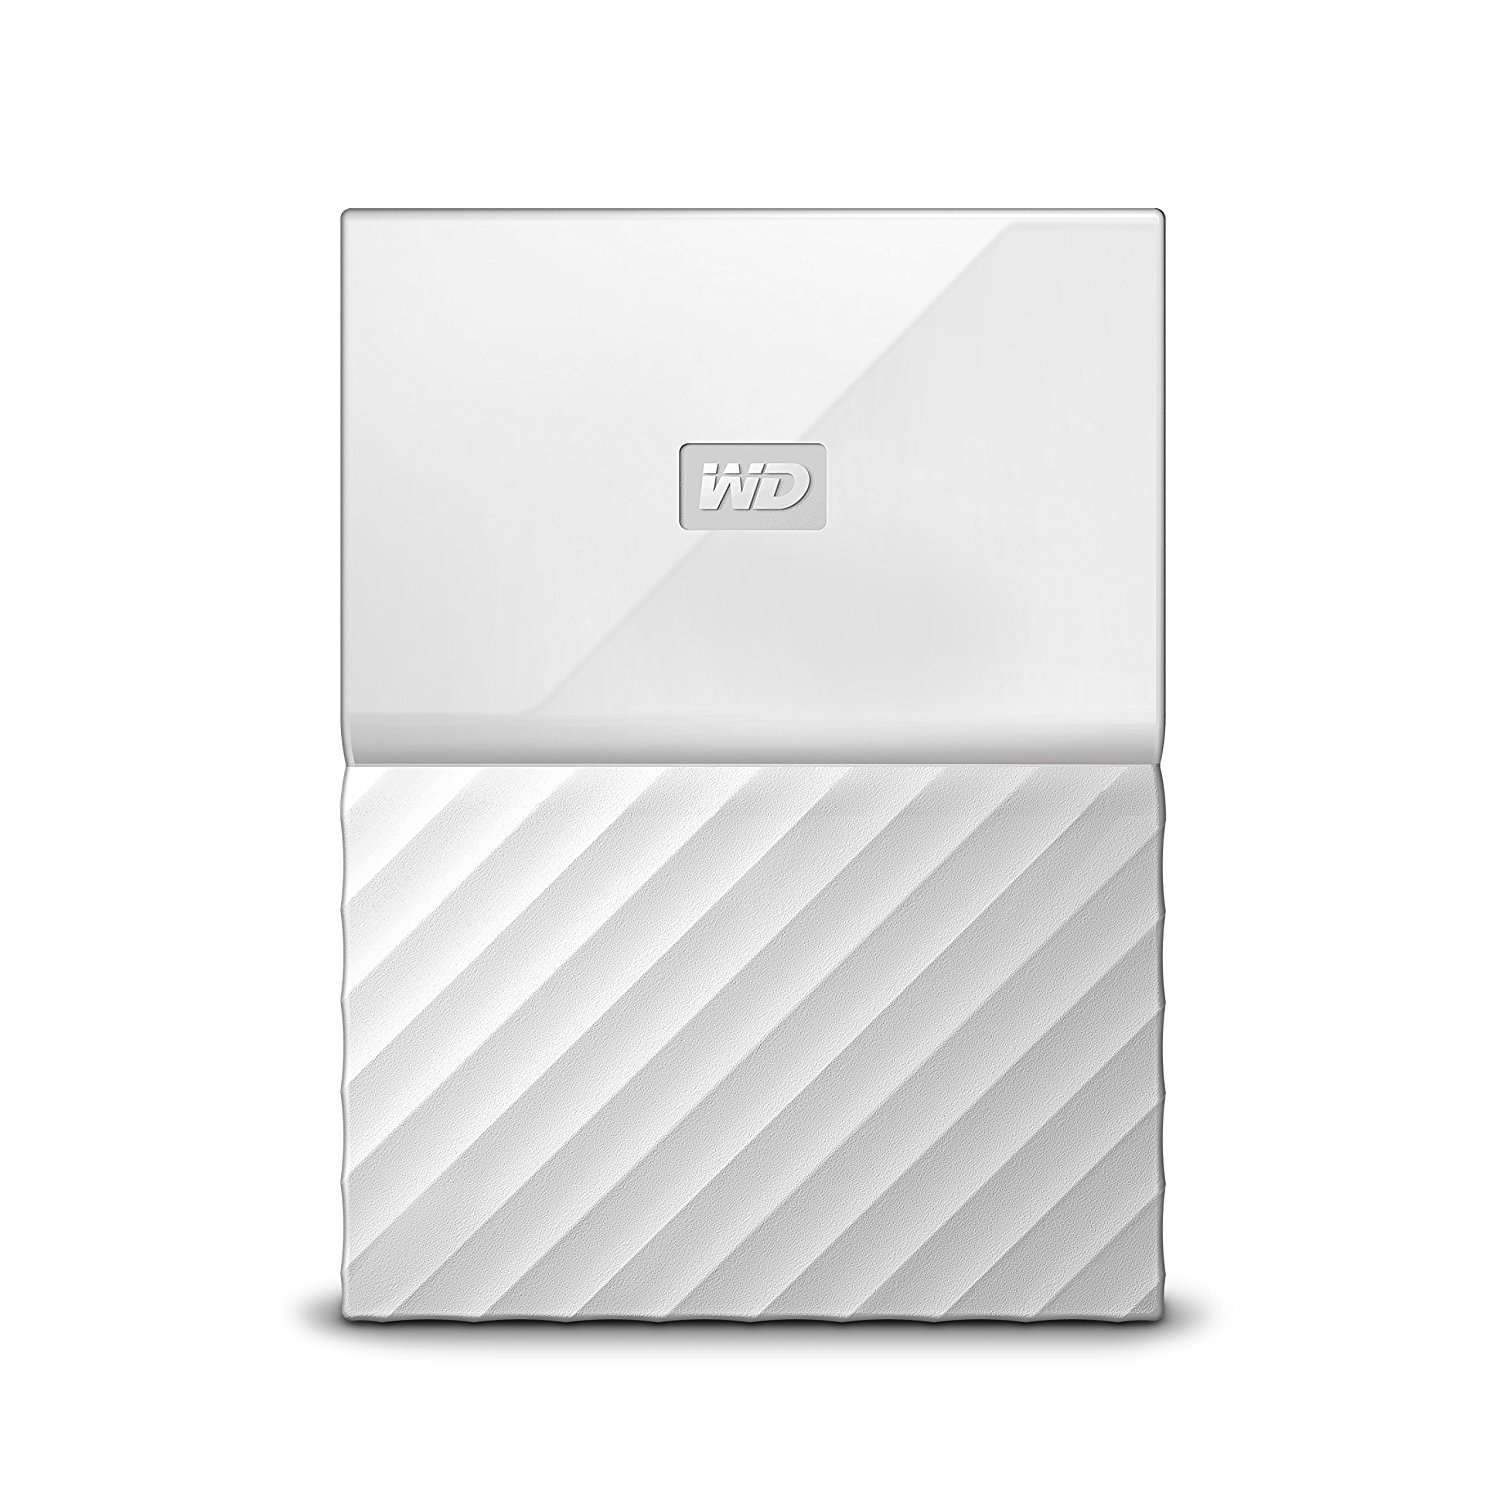 Western Digital My Passport externe harde schijf 2000 GB Wit